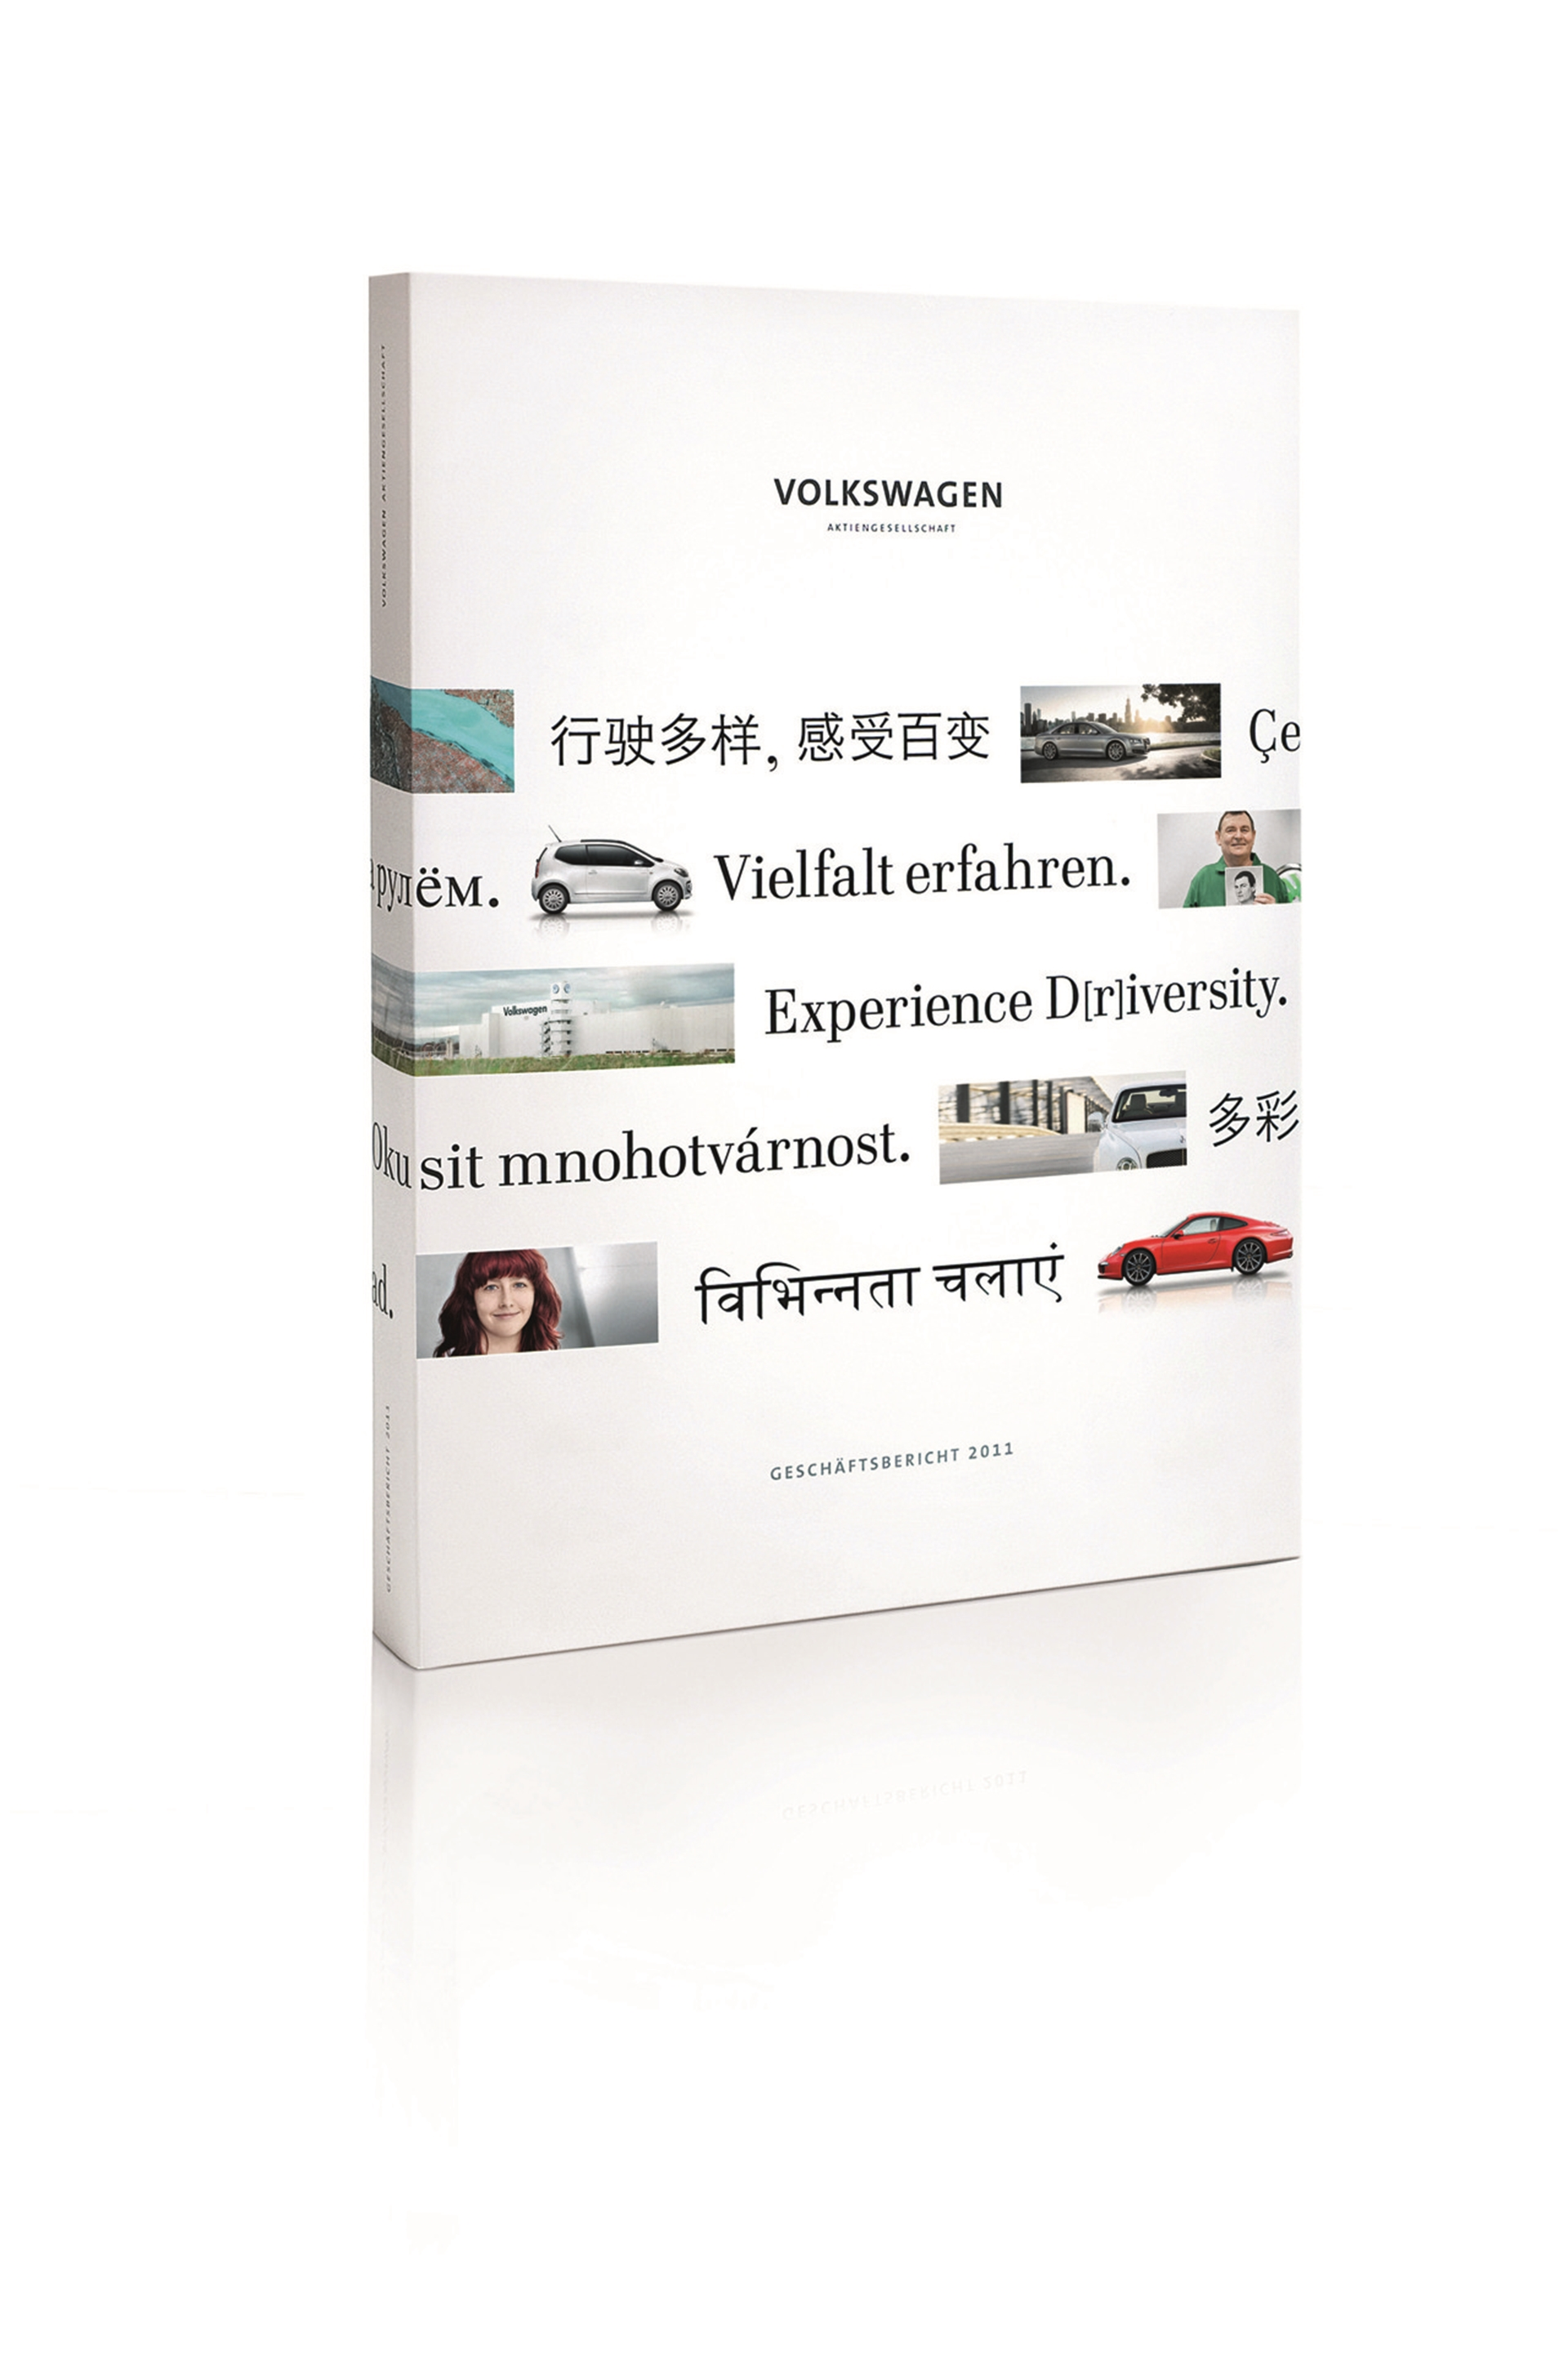 Volkswagen Corporate Publishing